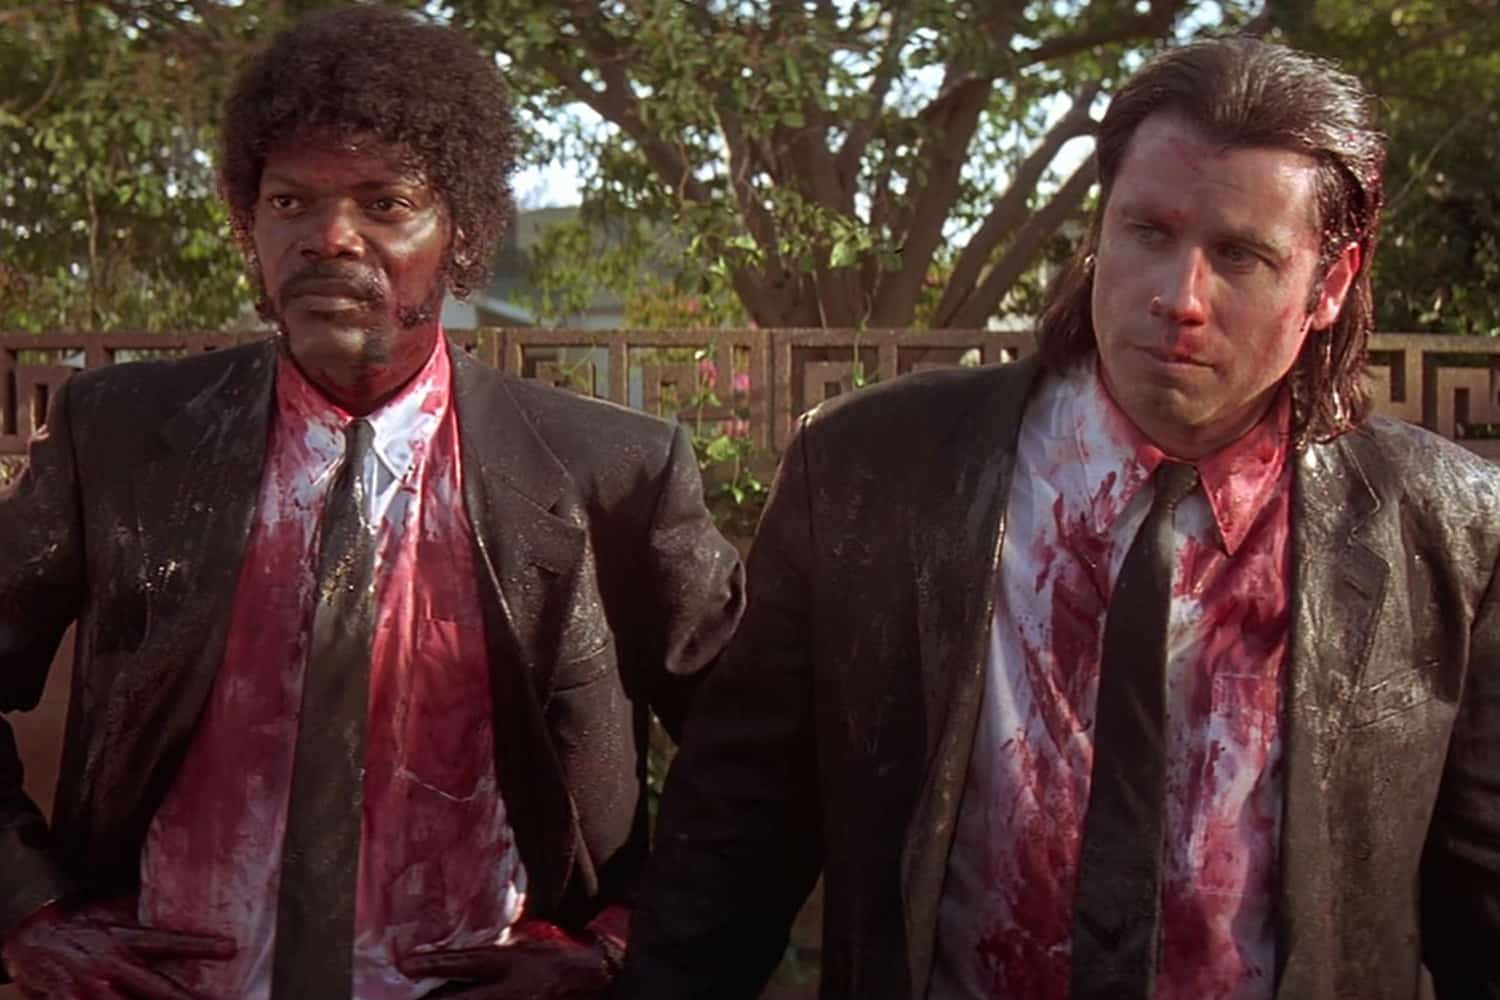 Quentin Tarantino Reservoir Dogs and Pulp Fiction Offered Morality Plays for the 1990s